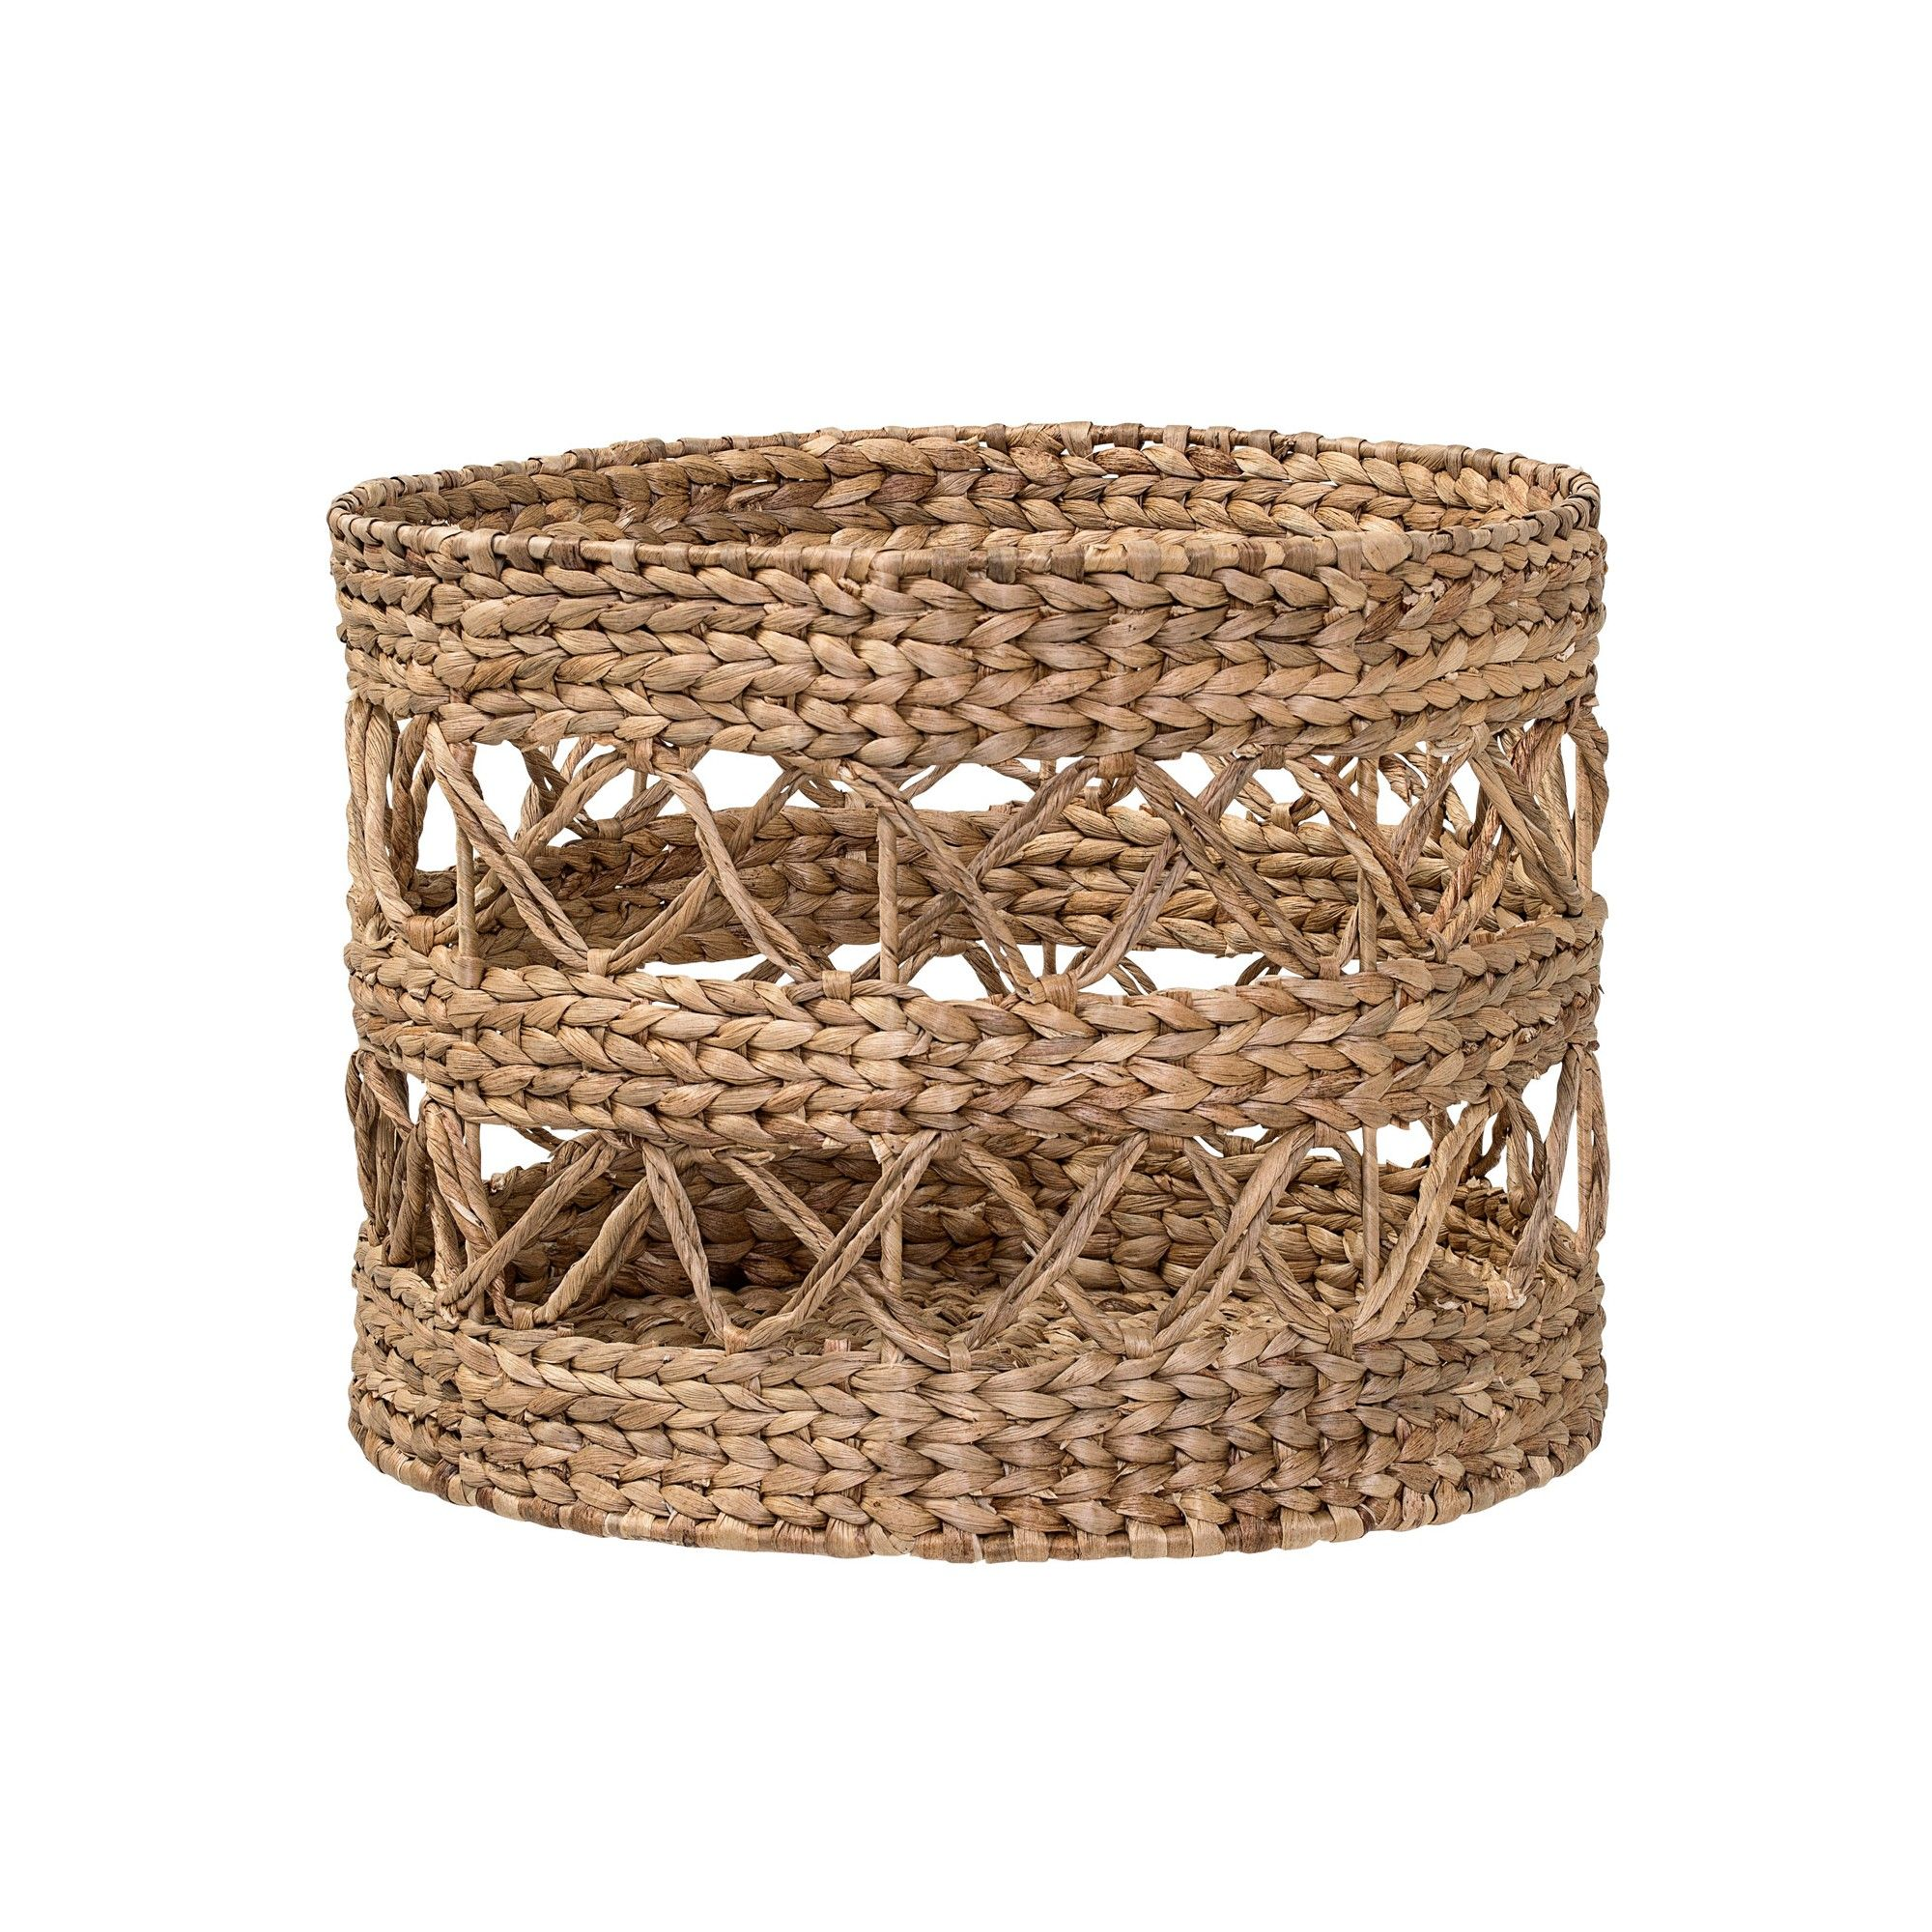 15 7 X 11 7 Round Open Weave Natural Water Hyacinth Basket Brown 3r Studios Water Hyacinth Open Weave Basket